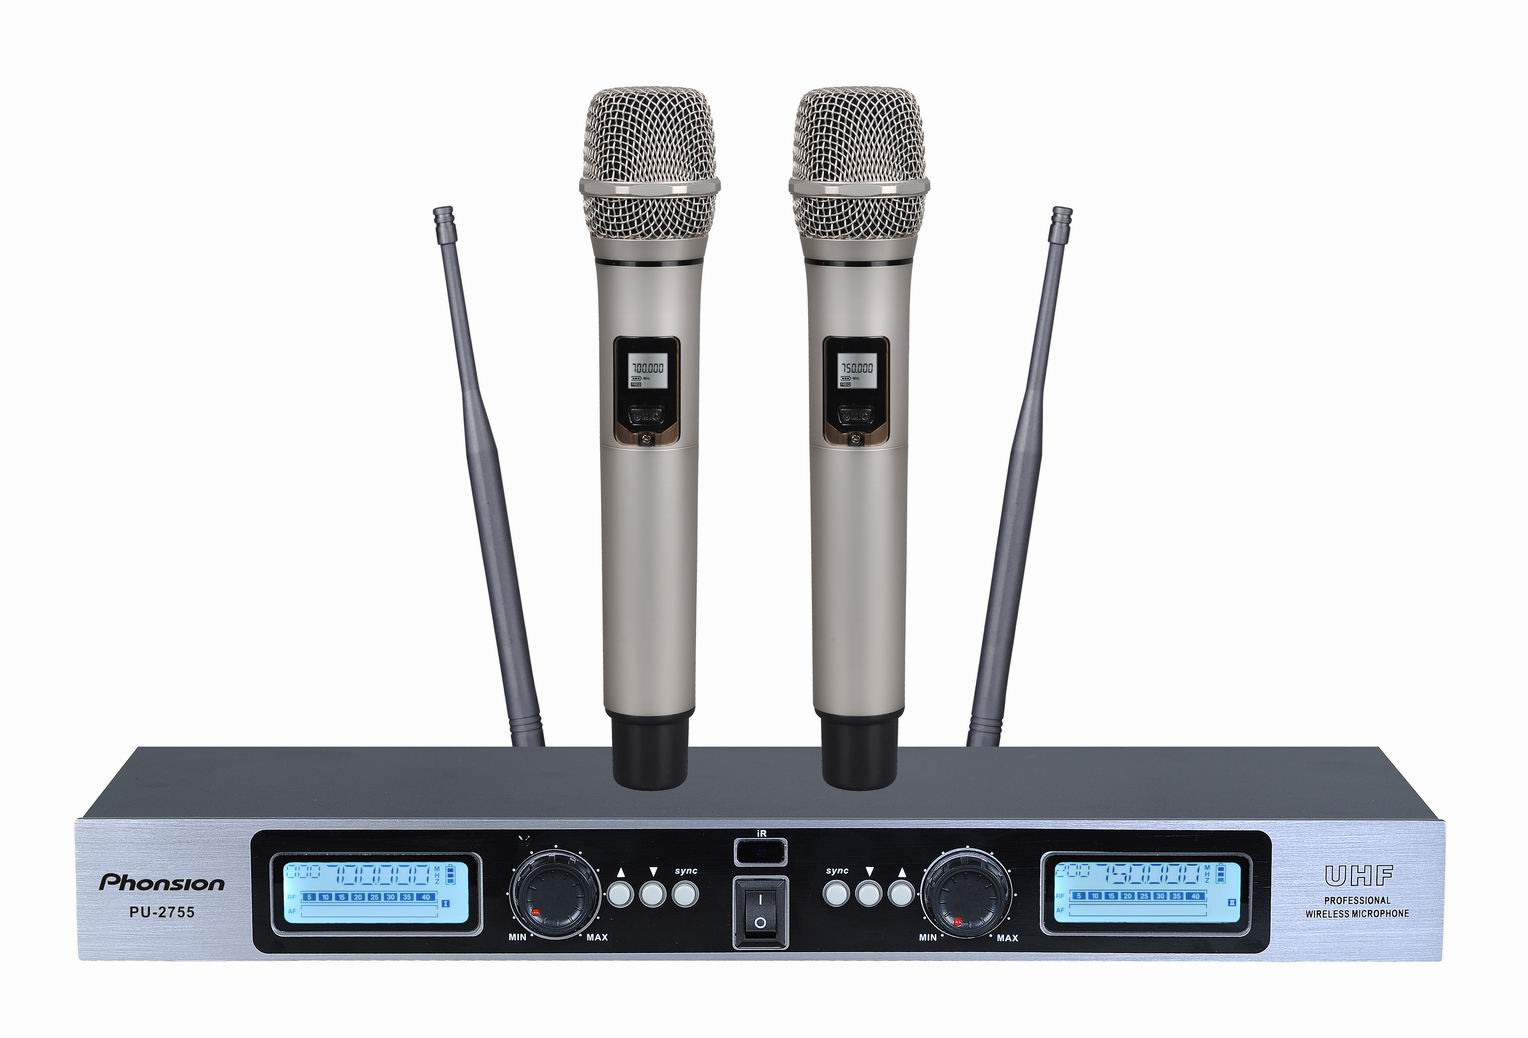 PU-2755 digital UHF wireless microphone